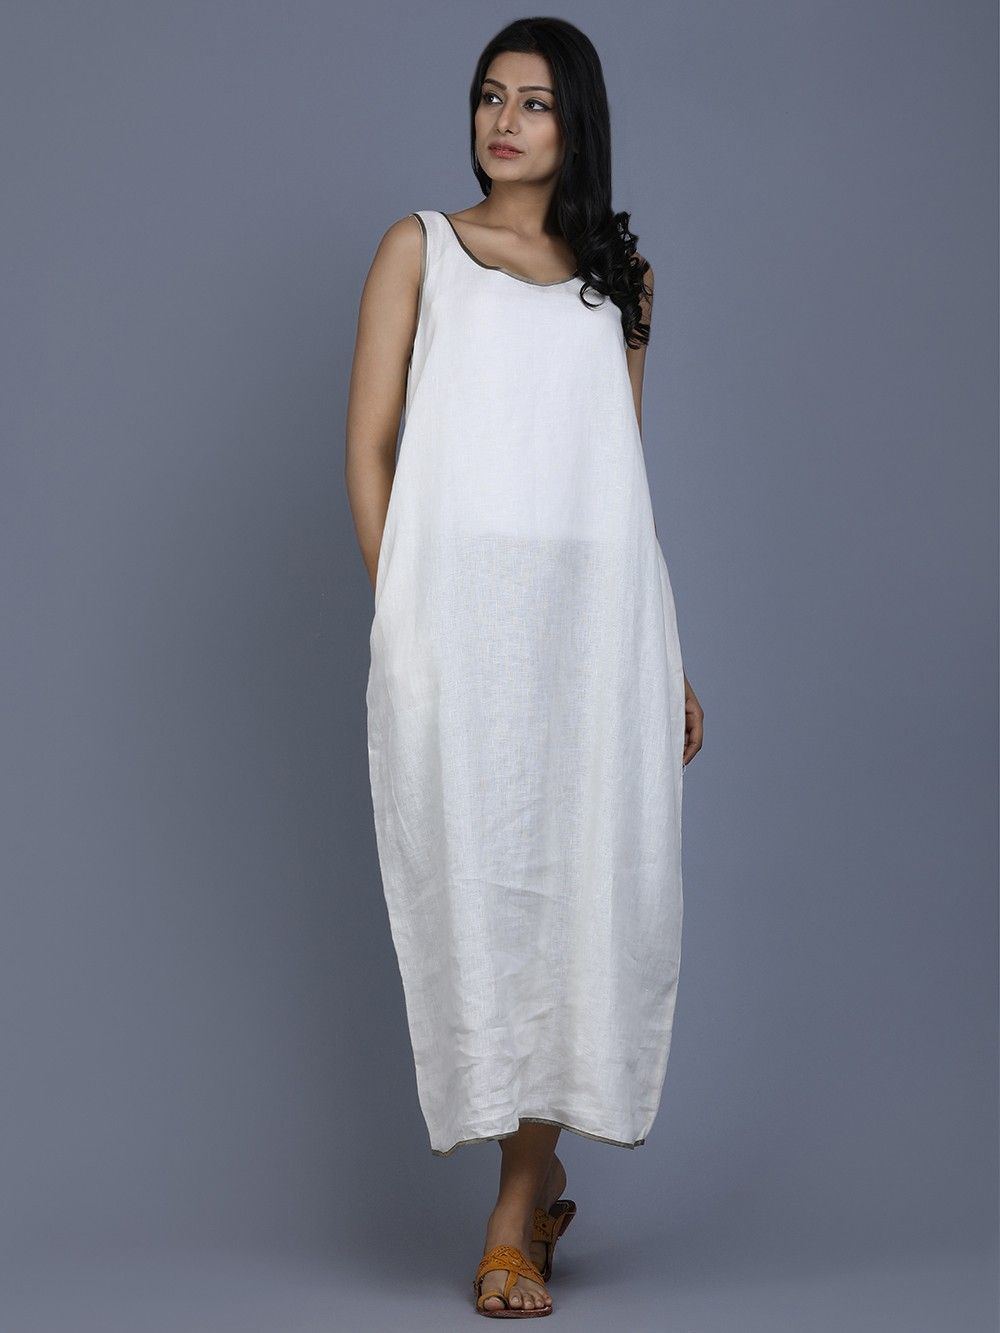 1b3ece7b6b0 Buy Off White Linen Classic Dress online at Theloom